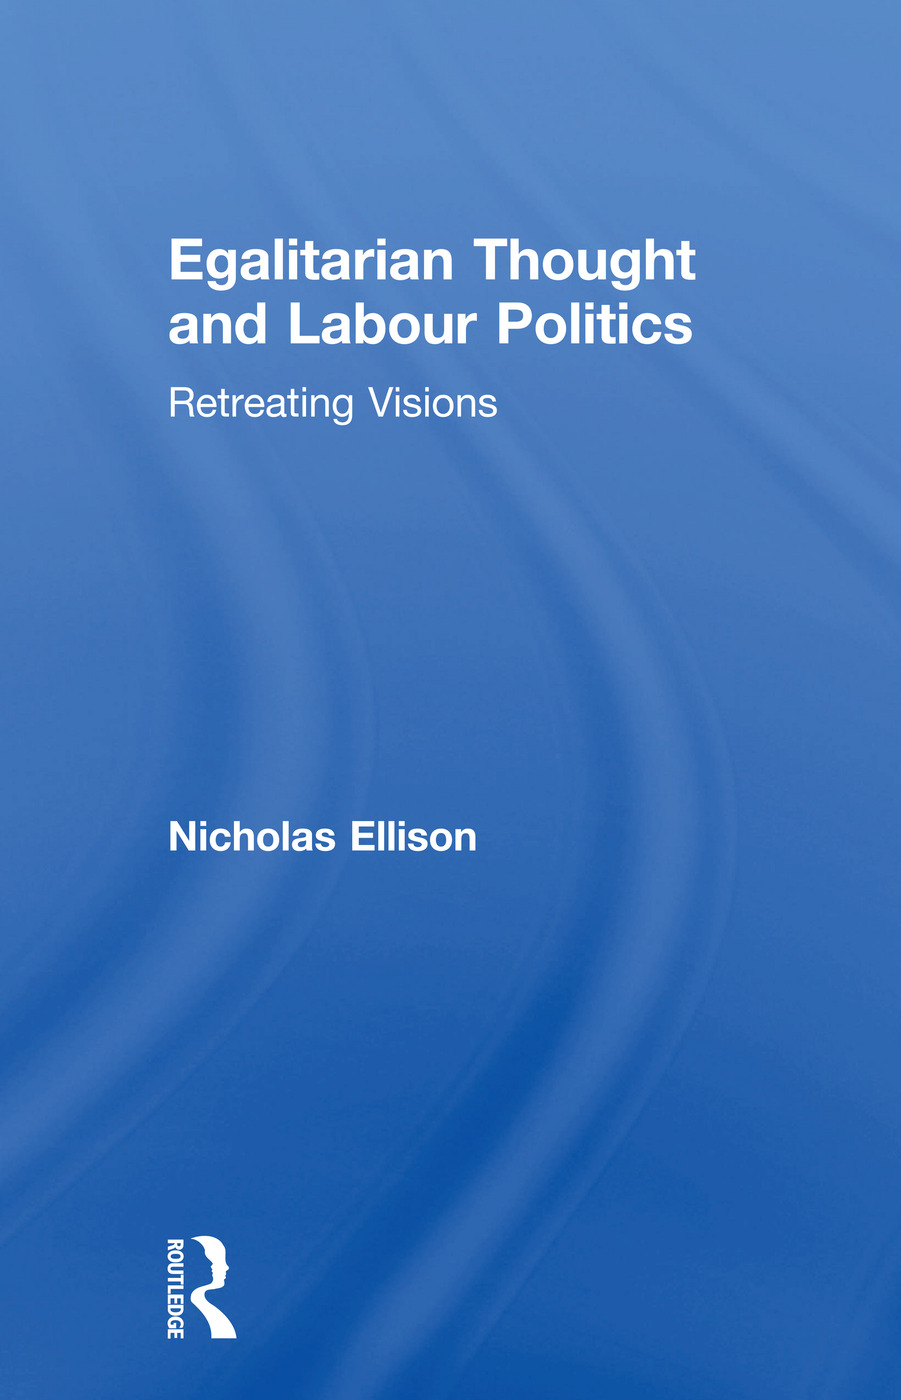 Egalitarian Thought and Labour Politics